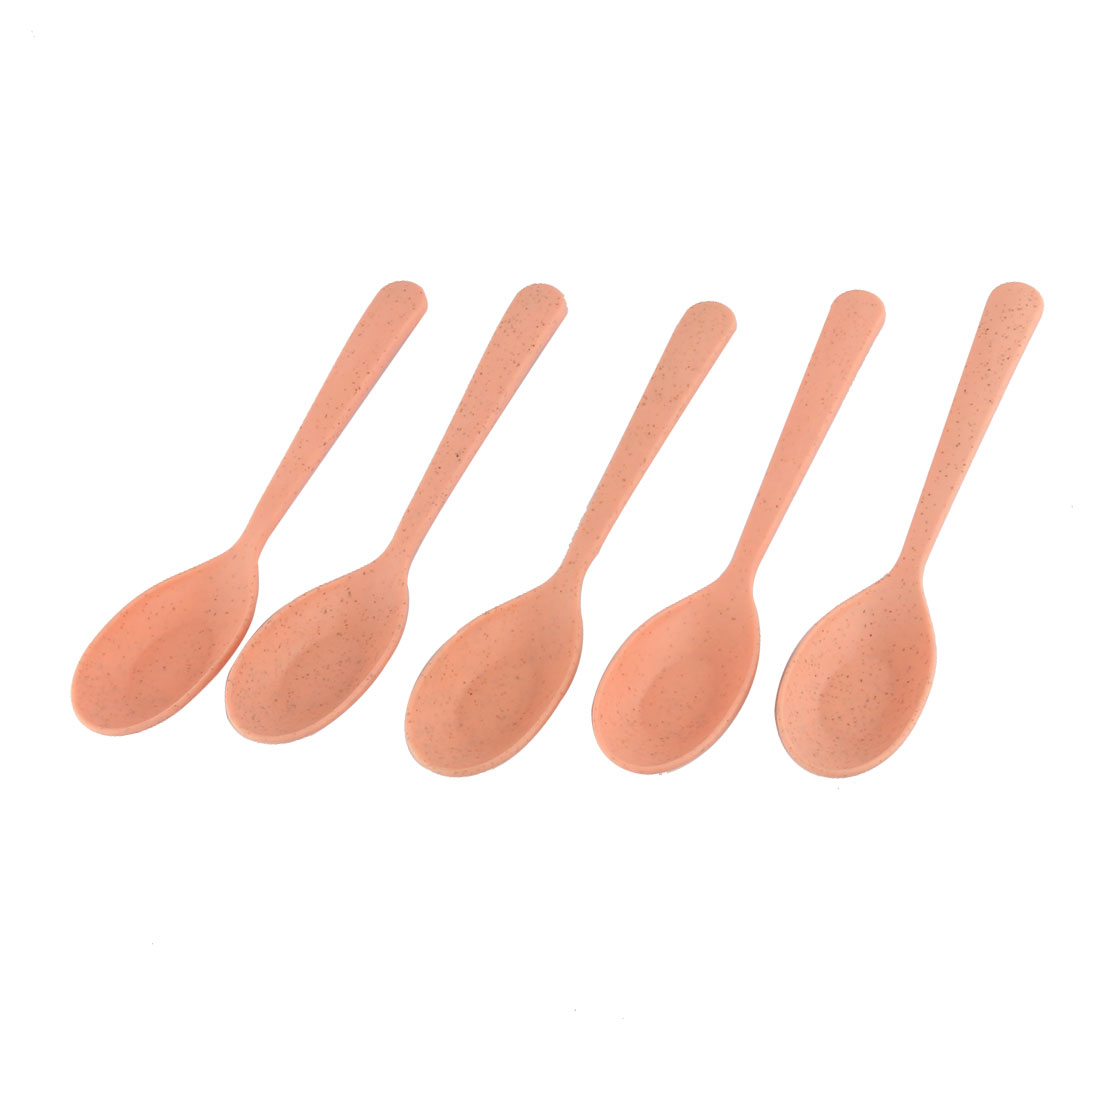 Dinnerware Tableware Plastic Porrige Soup Ice Cream Pudding Spoon Scoop Pink 5pcs